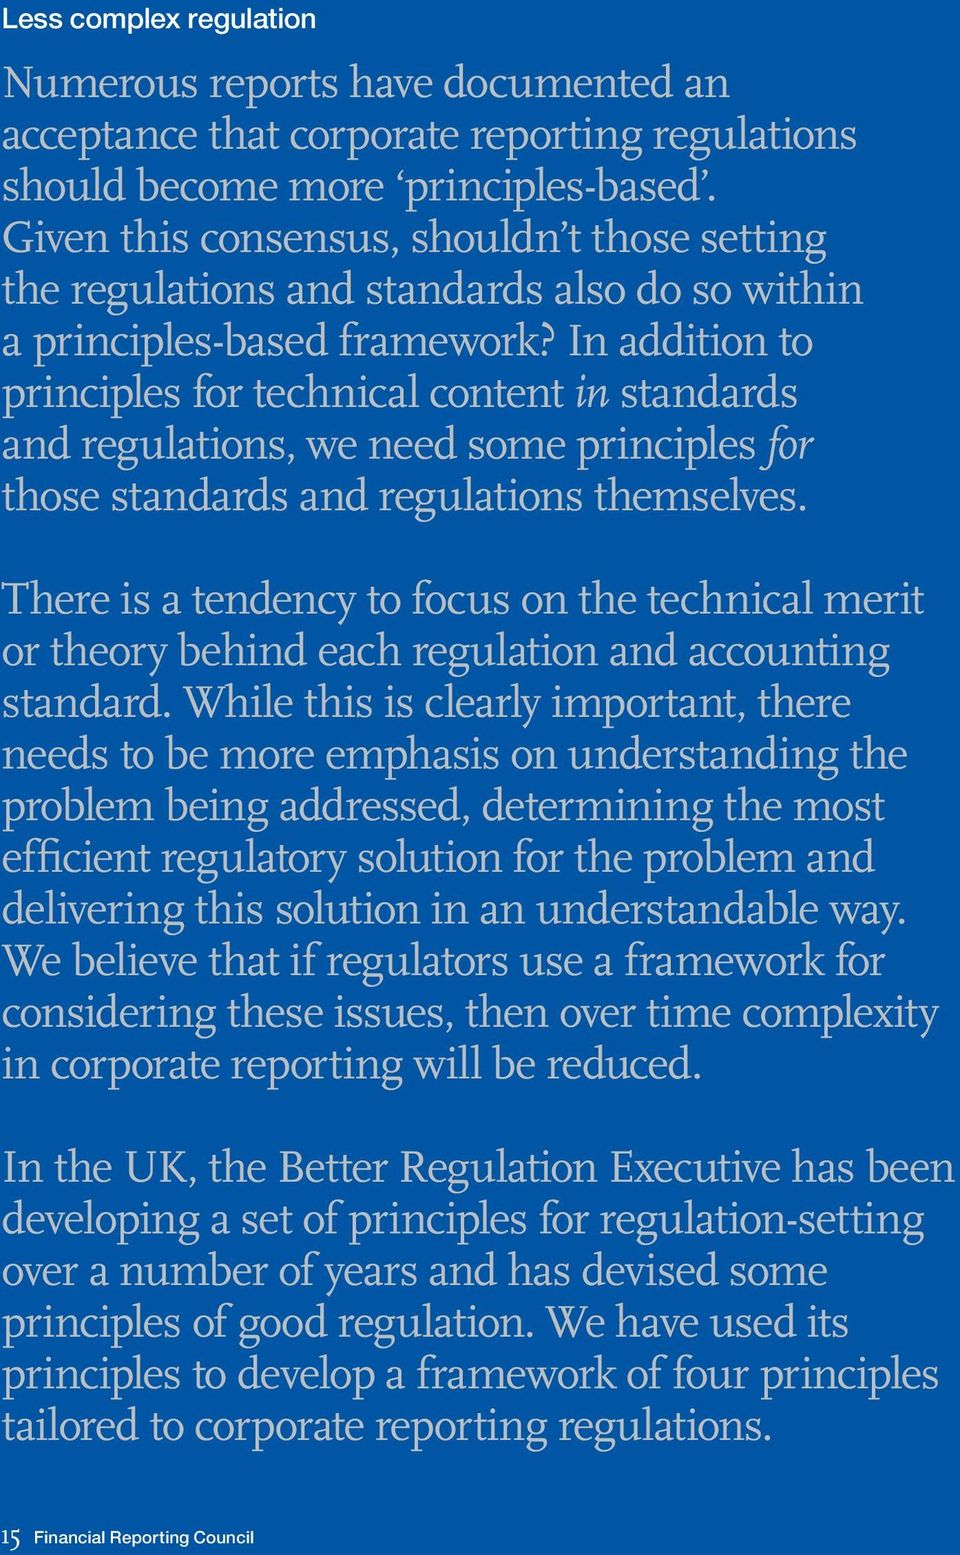 In addition to principles for technical content in standards and regulations, we need some principles for those standards and regulations themselves.